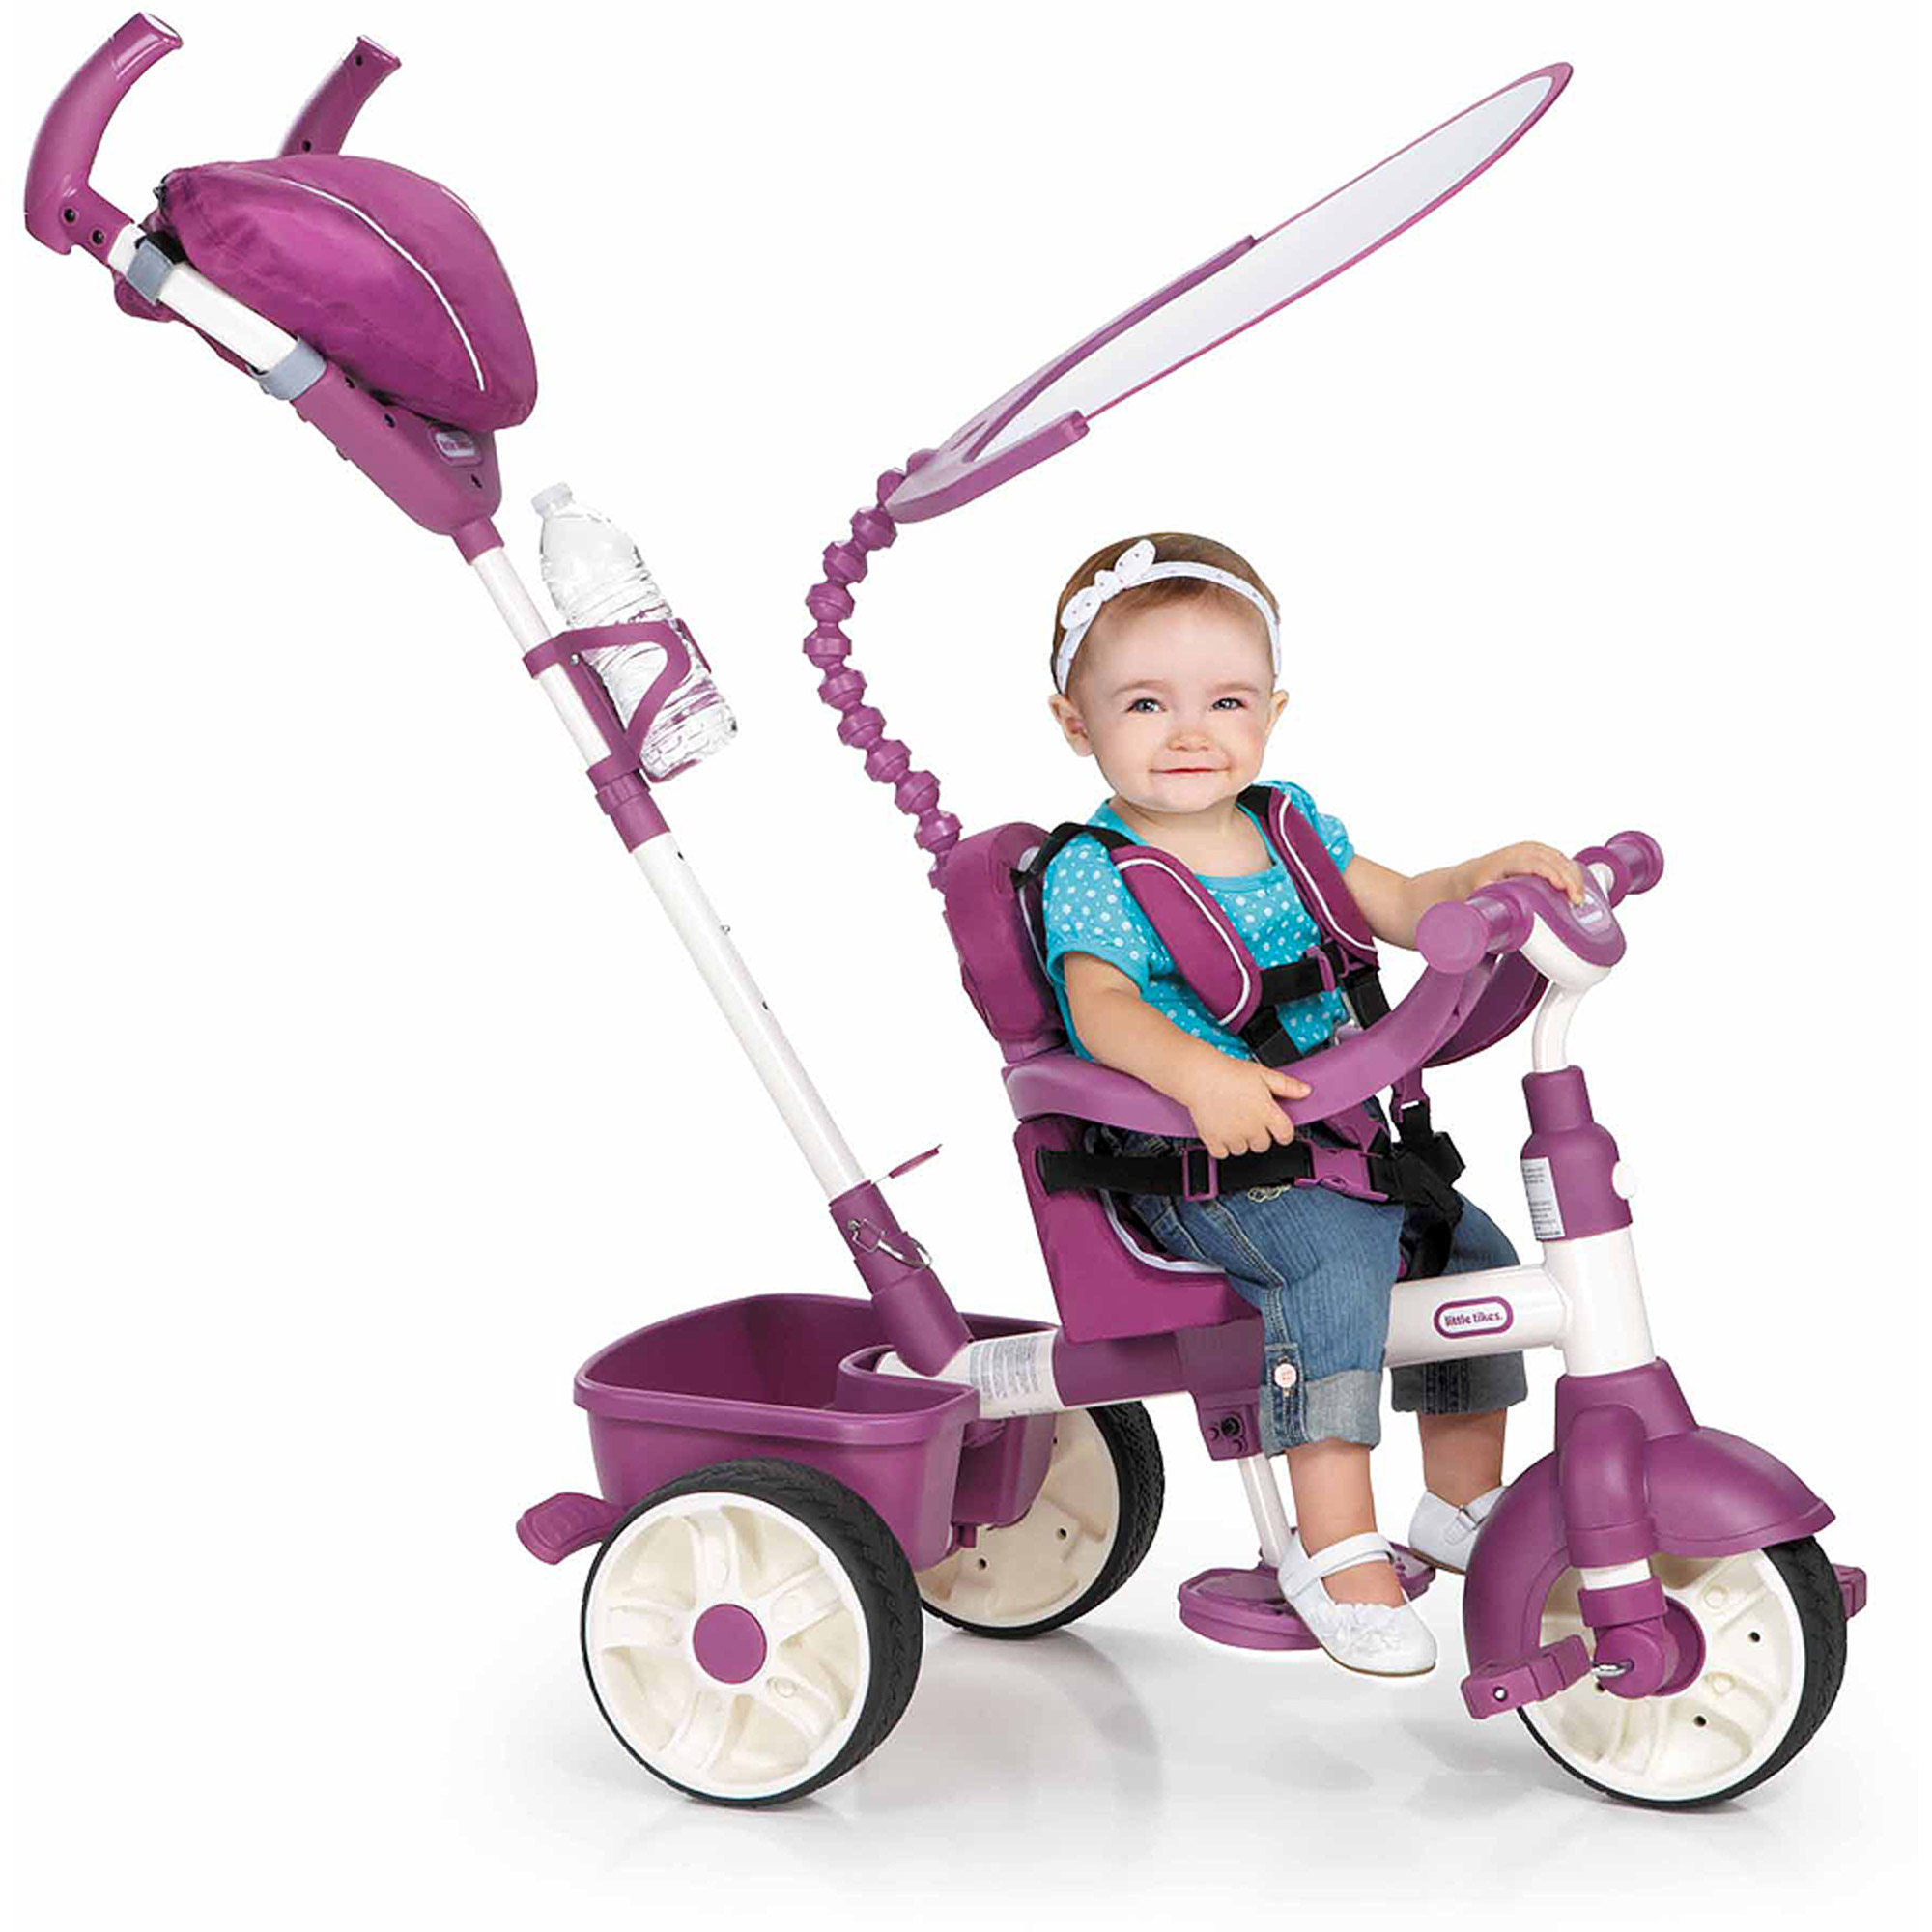 Little Tikes 4-in-1 Sports Edition Trike, Pink/White